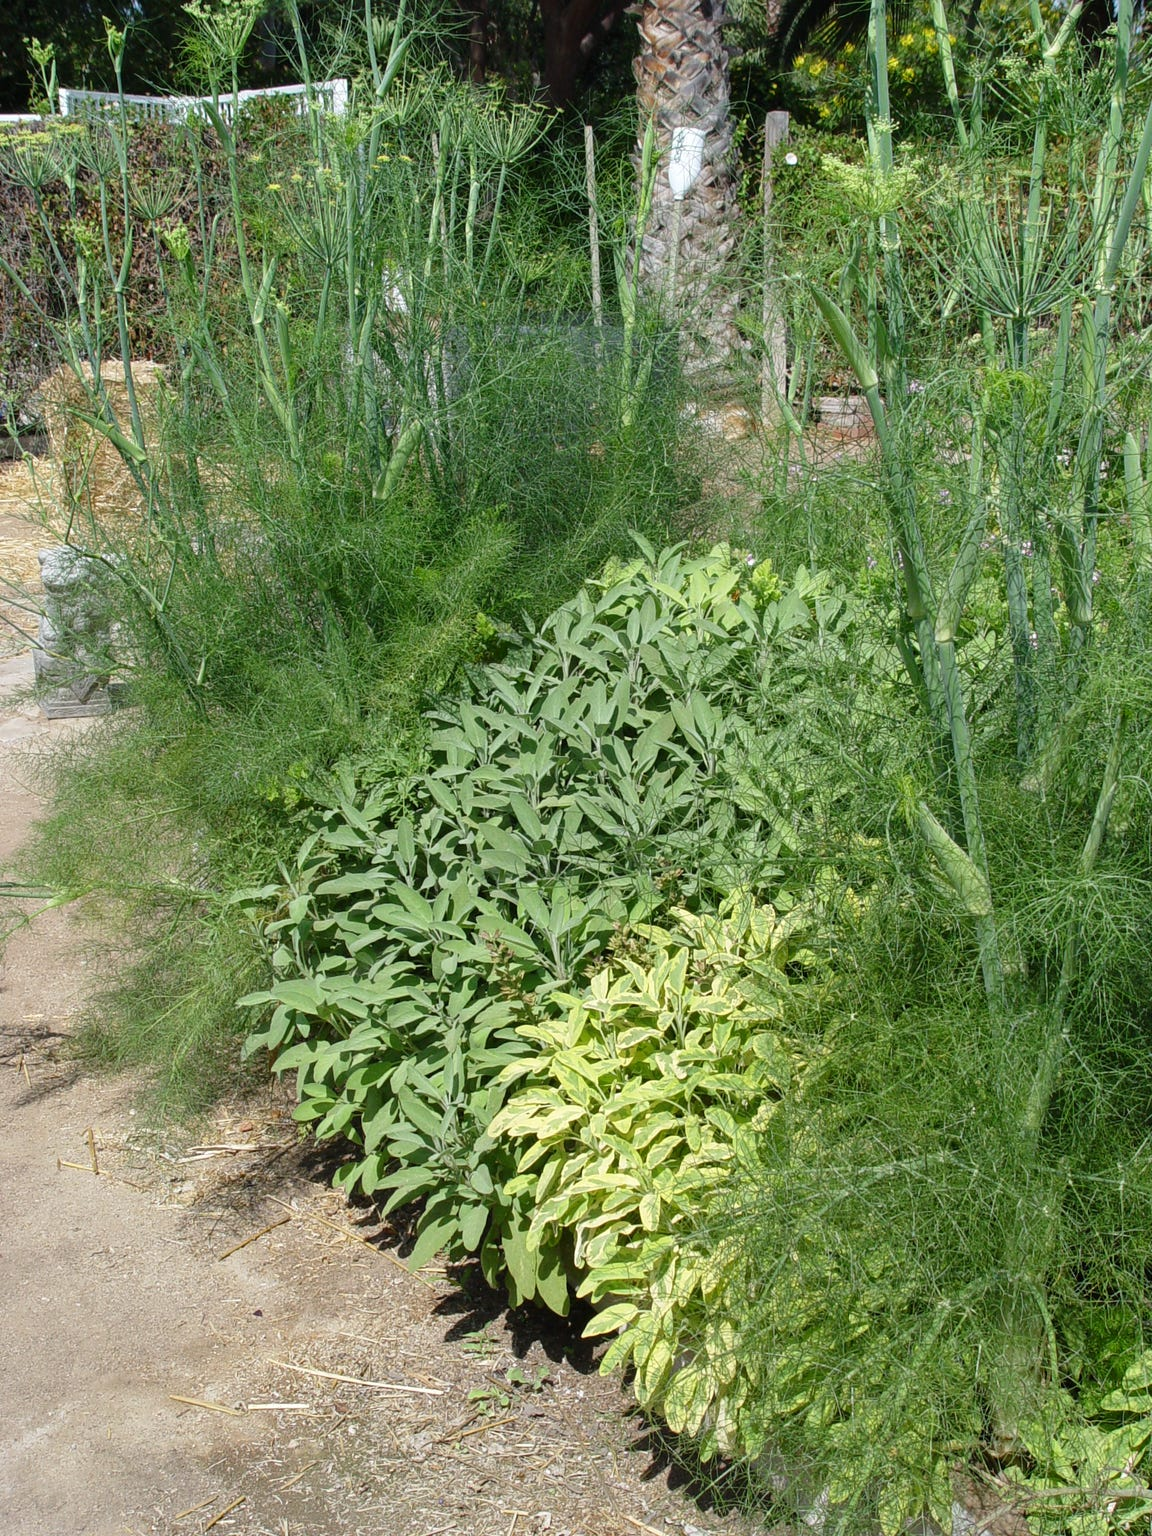 Bulbing fennel, sage and gold variegated sage grow happily side by side.